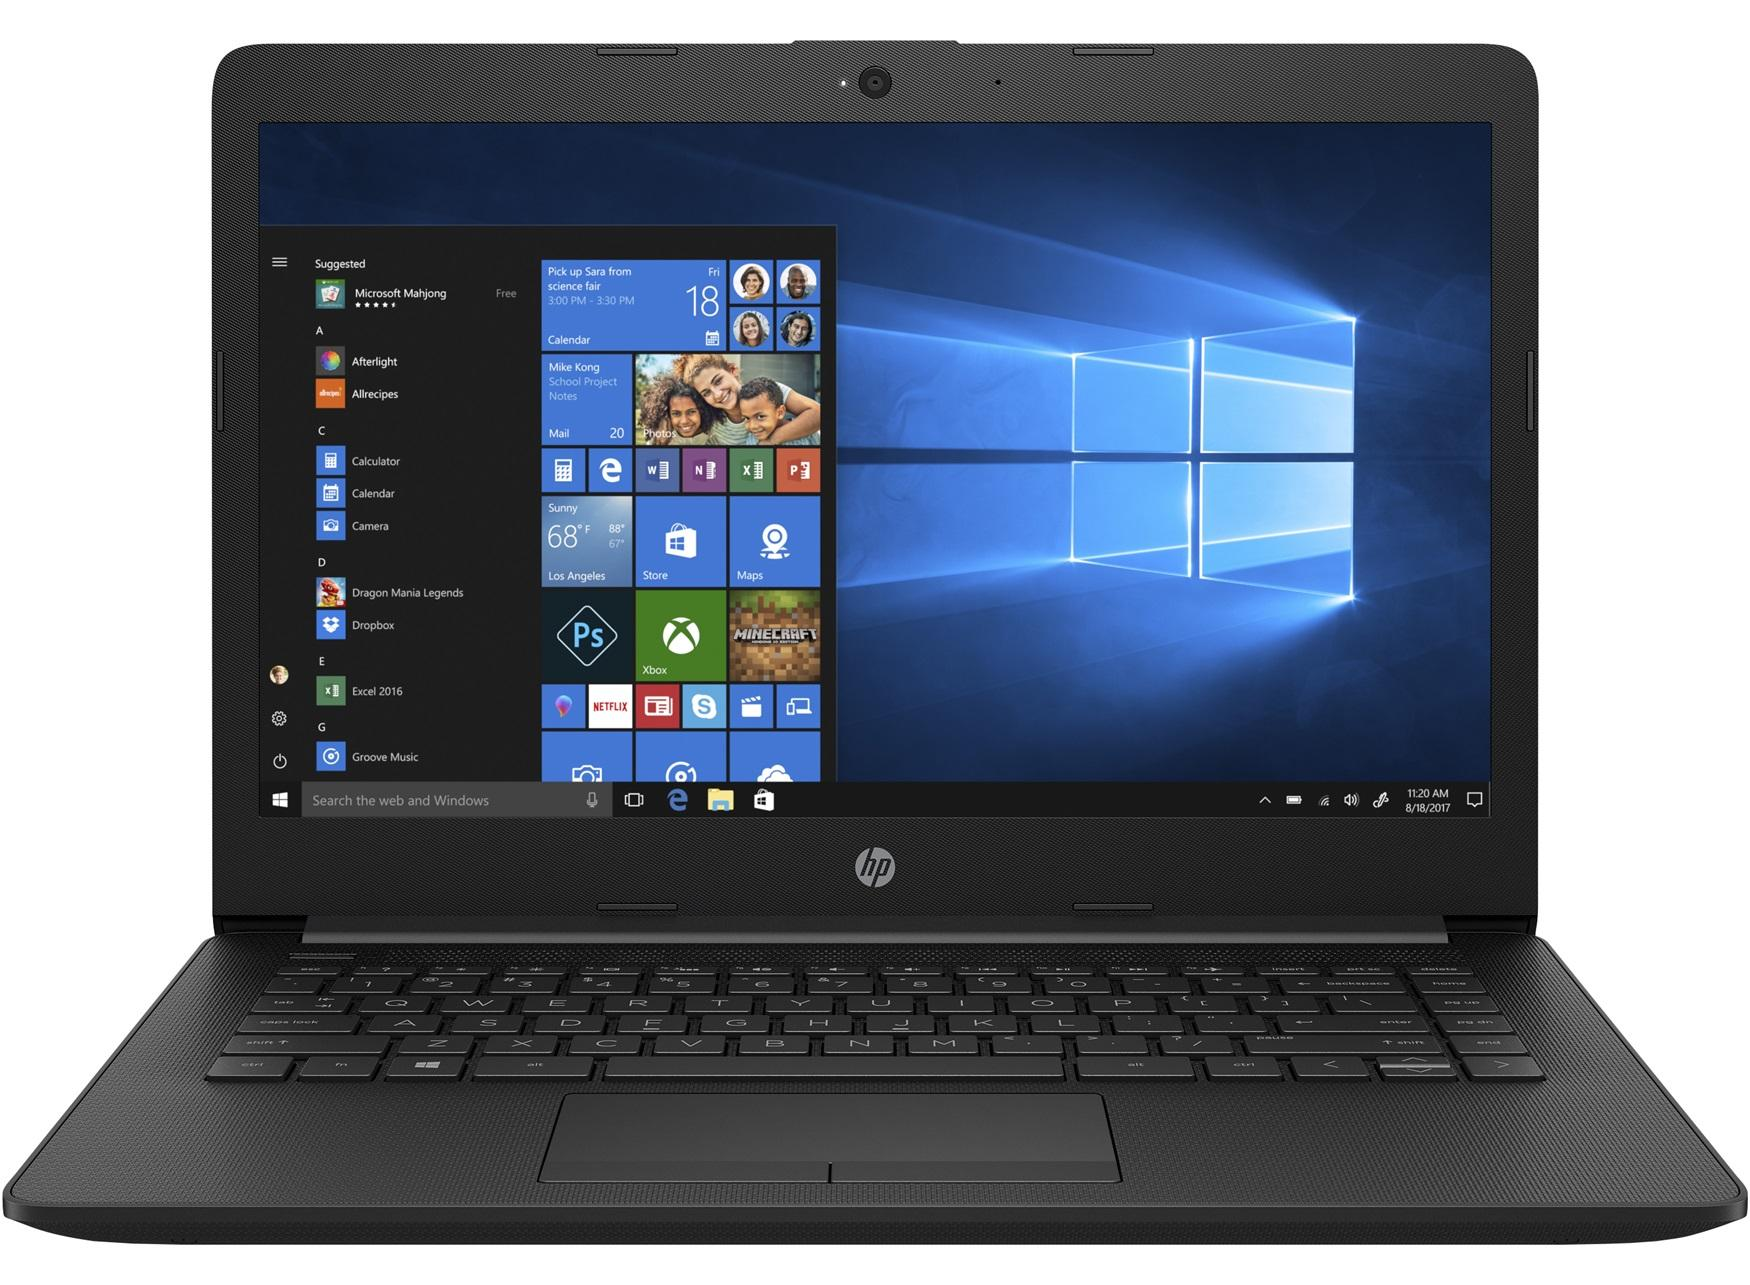 HP 14-CK0025TU (Intel Celeron N4000 Processor, 4GB RAM, Intel UMA, 1TB HDD)